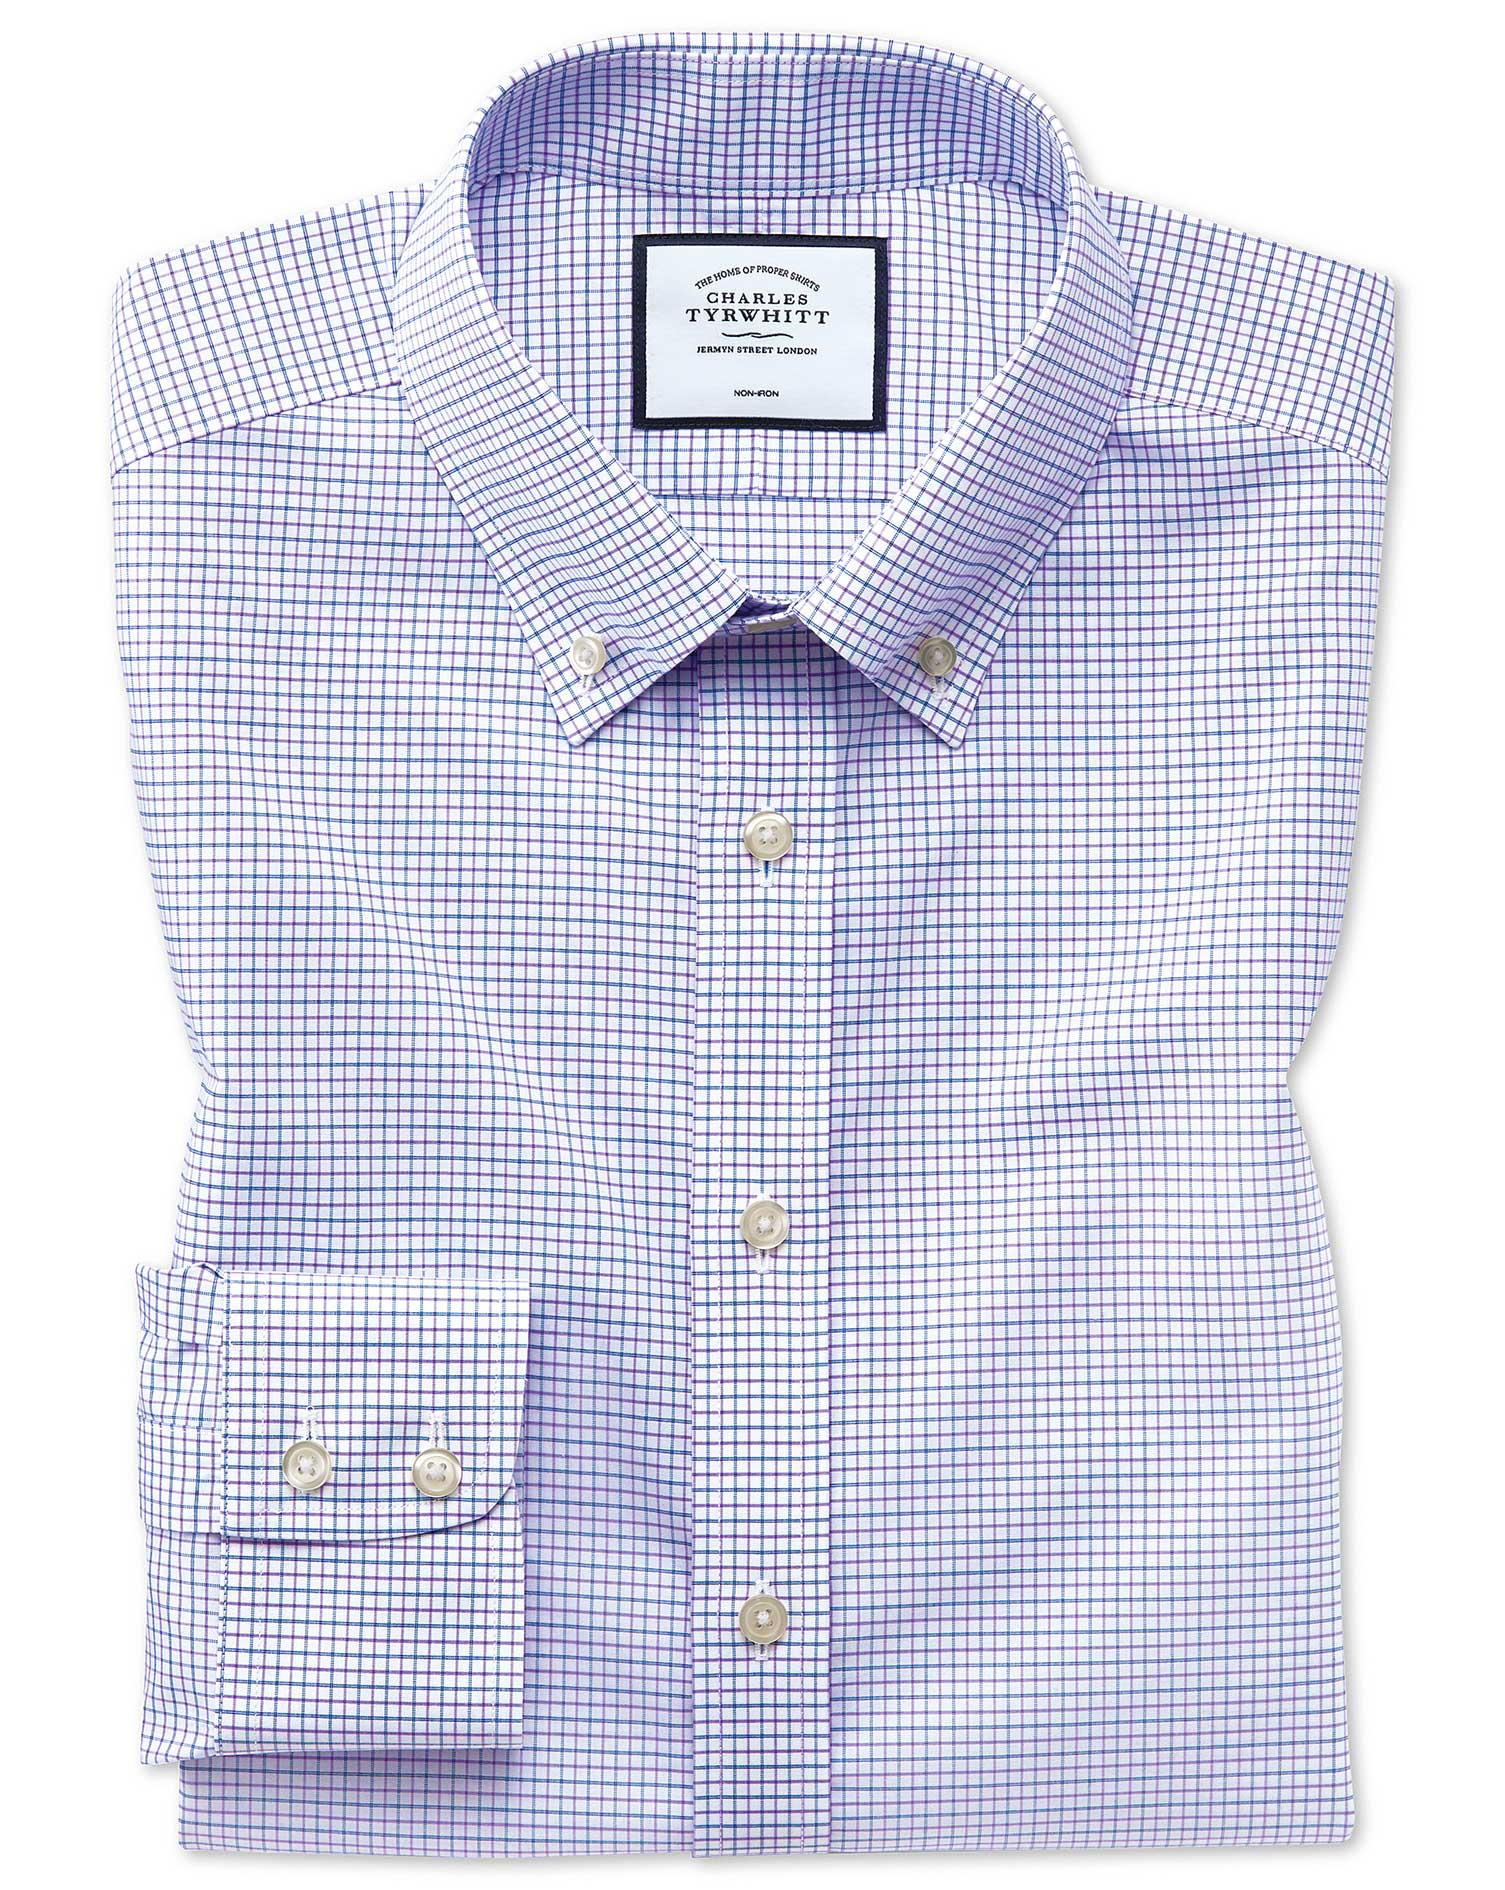 Slim Fit Non-Iron Button-Down Lilac and Blue Check Cotton Formal Shirt Single Cuff Size 14.5/33 by C